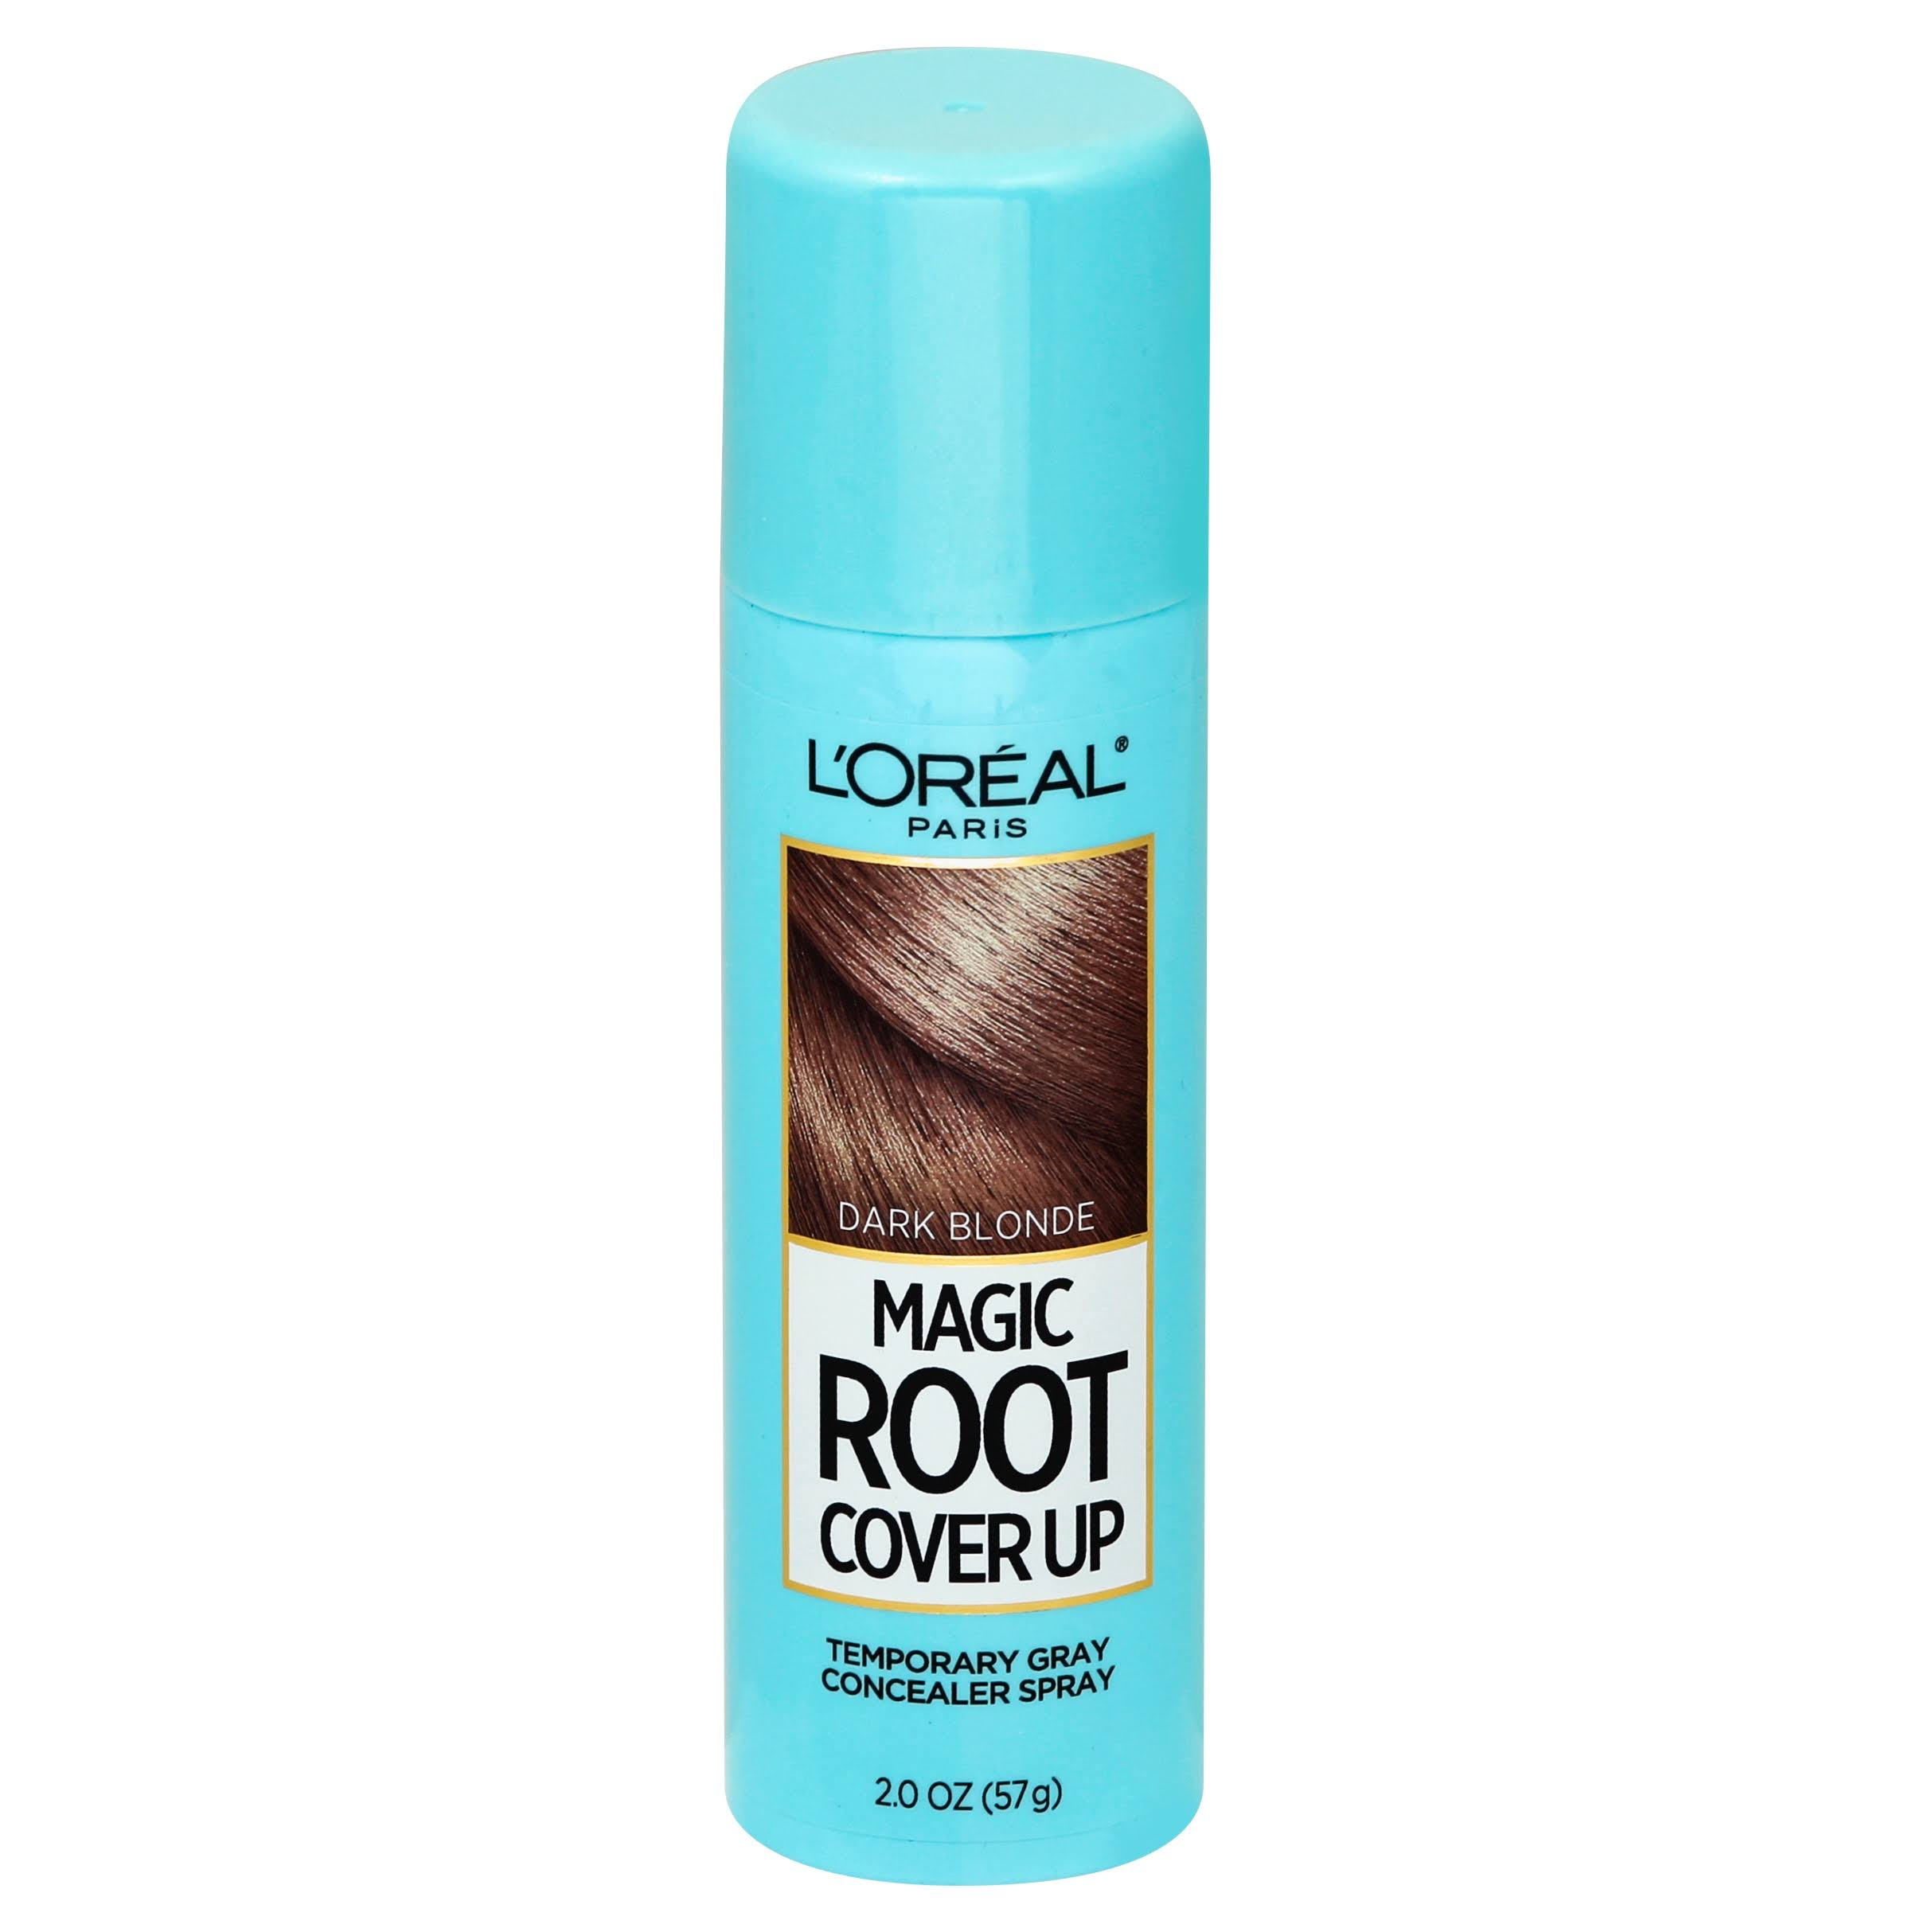 L'Oréal Paris Root Cover Up Temporary Gray Concealer Spray - Dark Blonde, 2oz